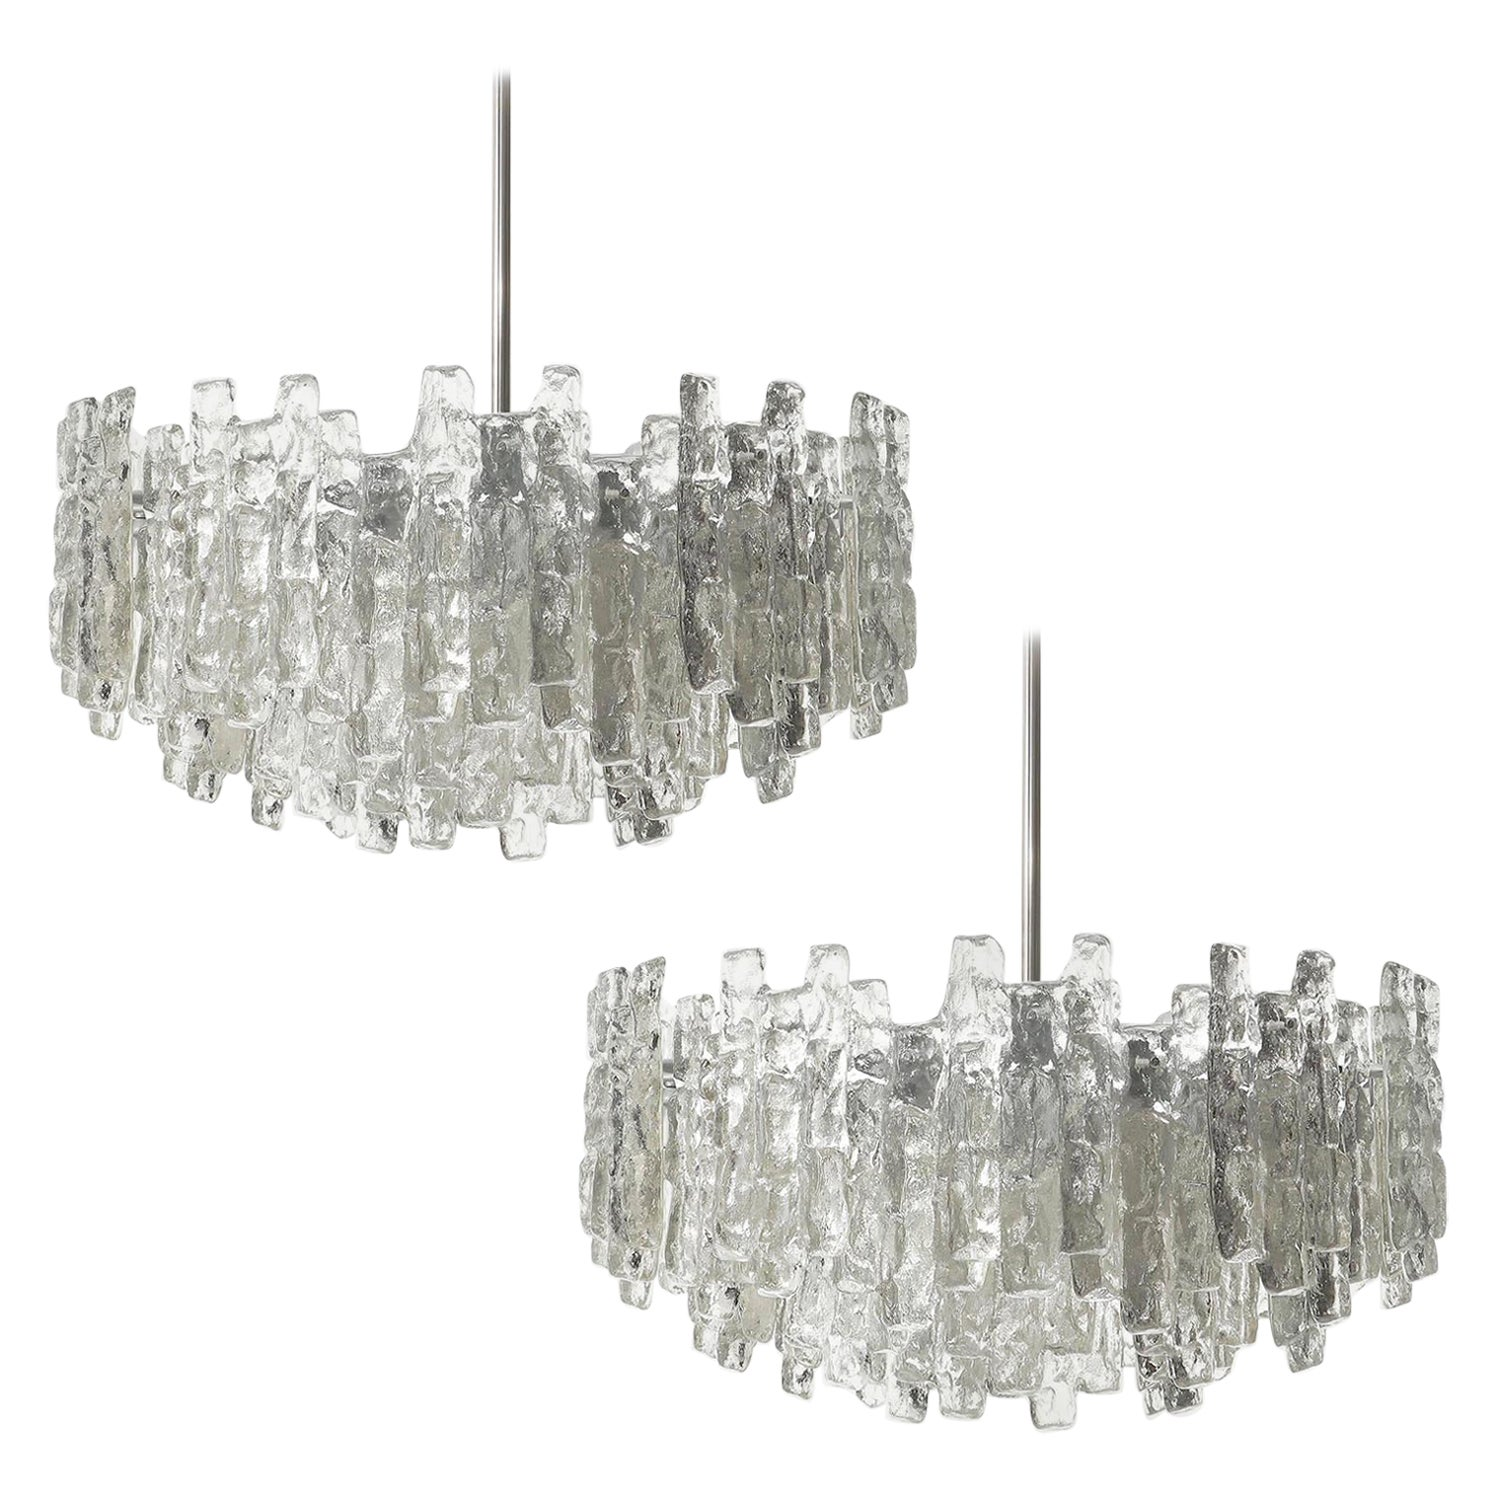 One of Two Huge Kalmar Chandeliers, Ice Glass and Nickel, Austria, 1960s